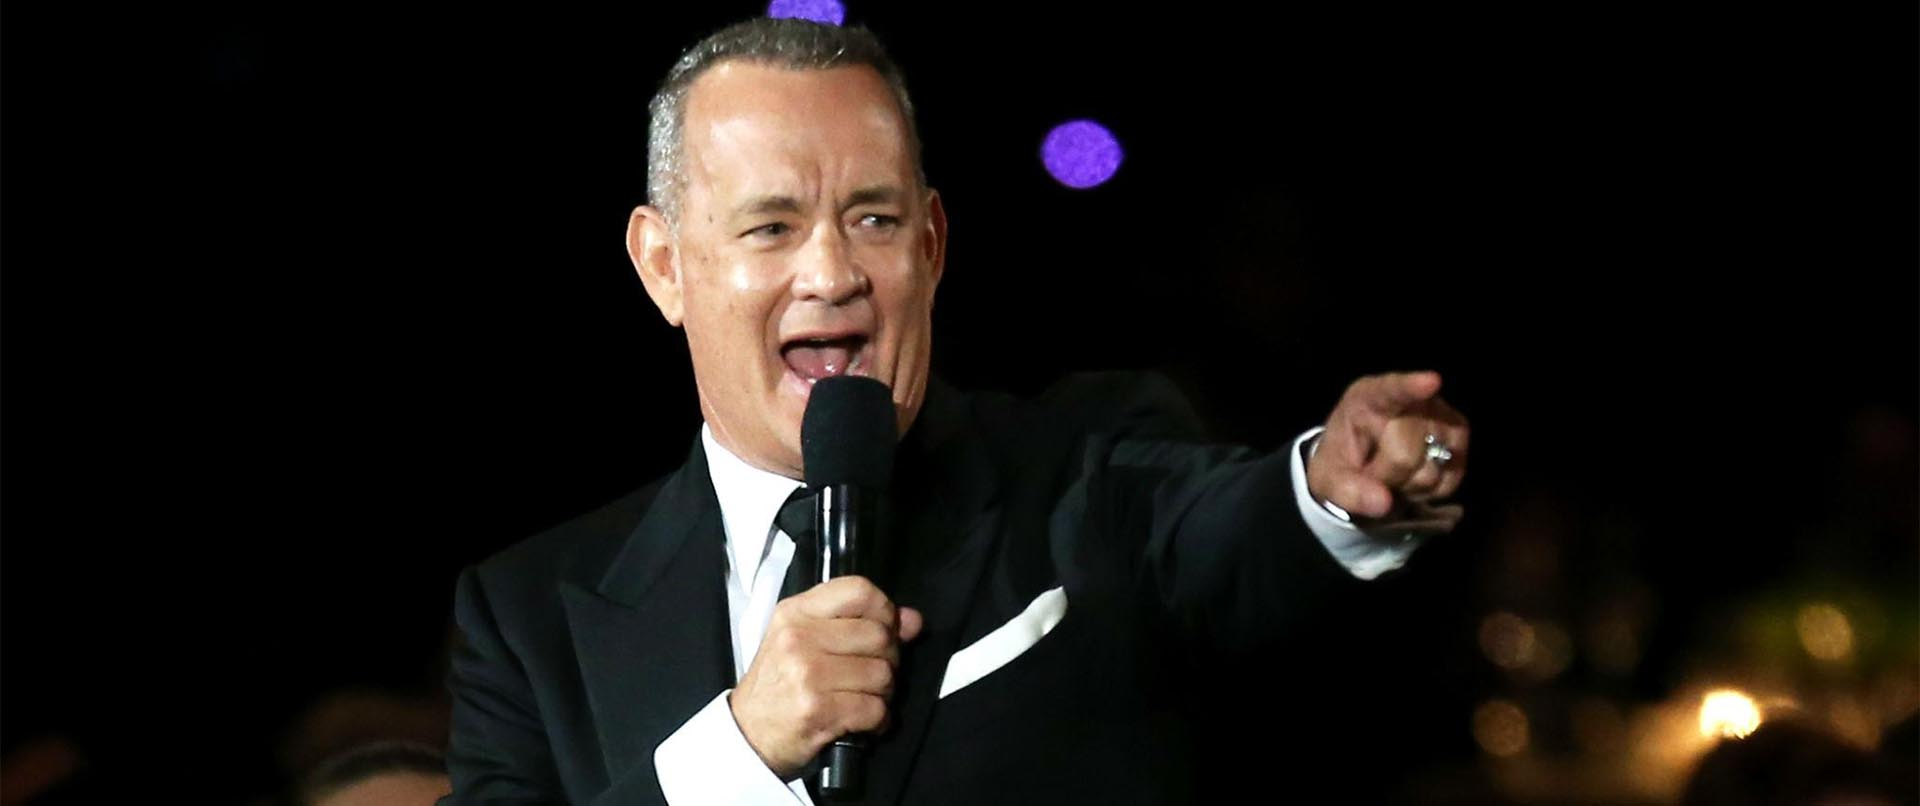 Disney busca a Tom Hanks para interpretar a Geppetto en Pinocho